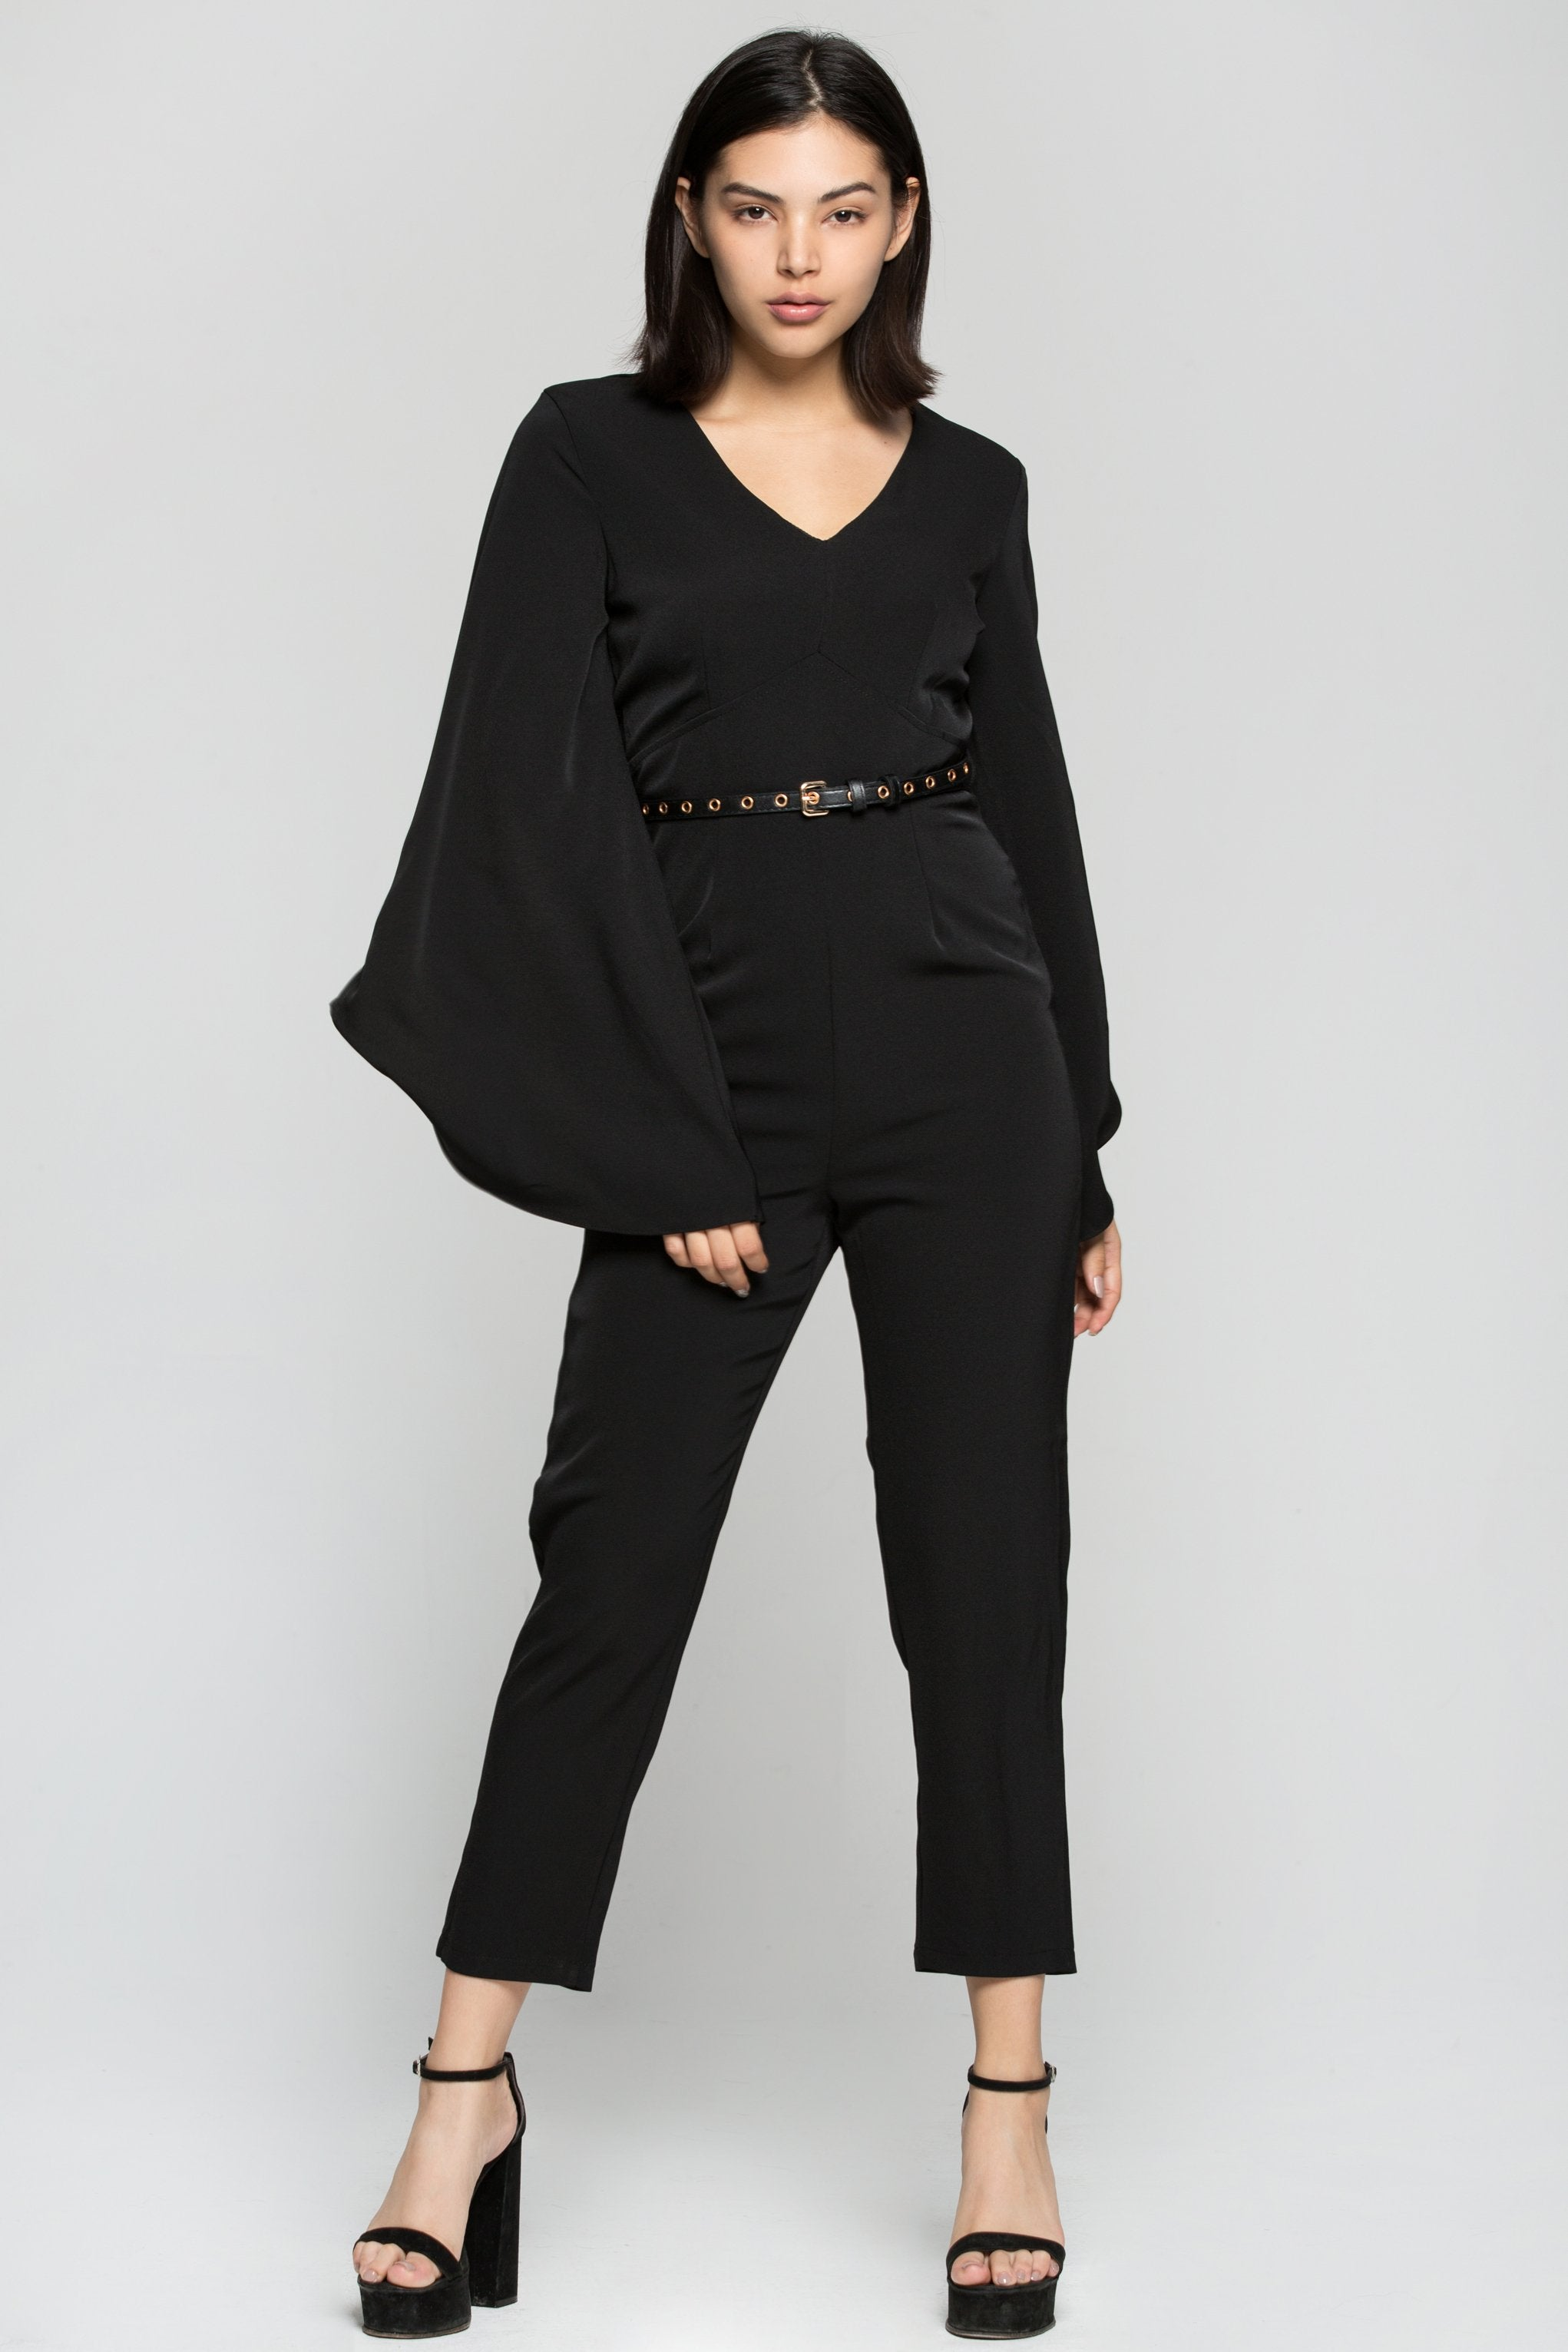 Black Heather Jumpsuit